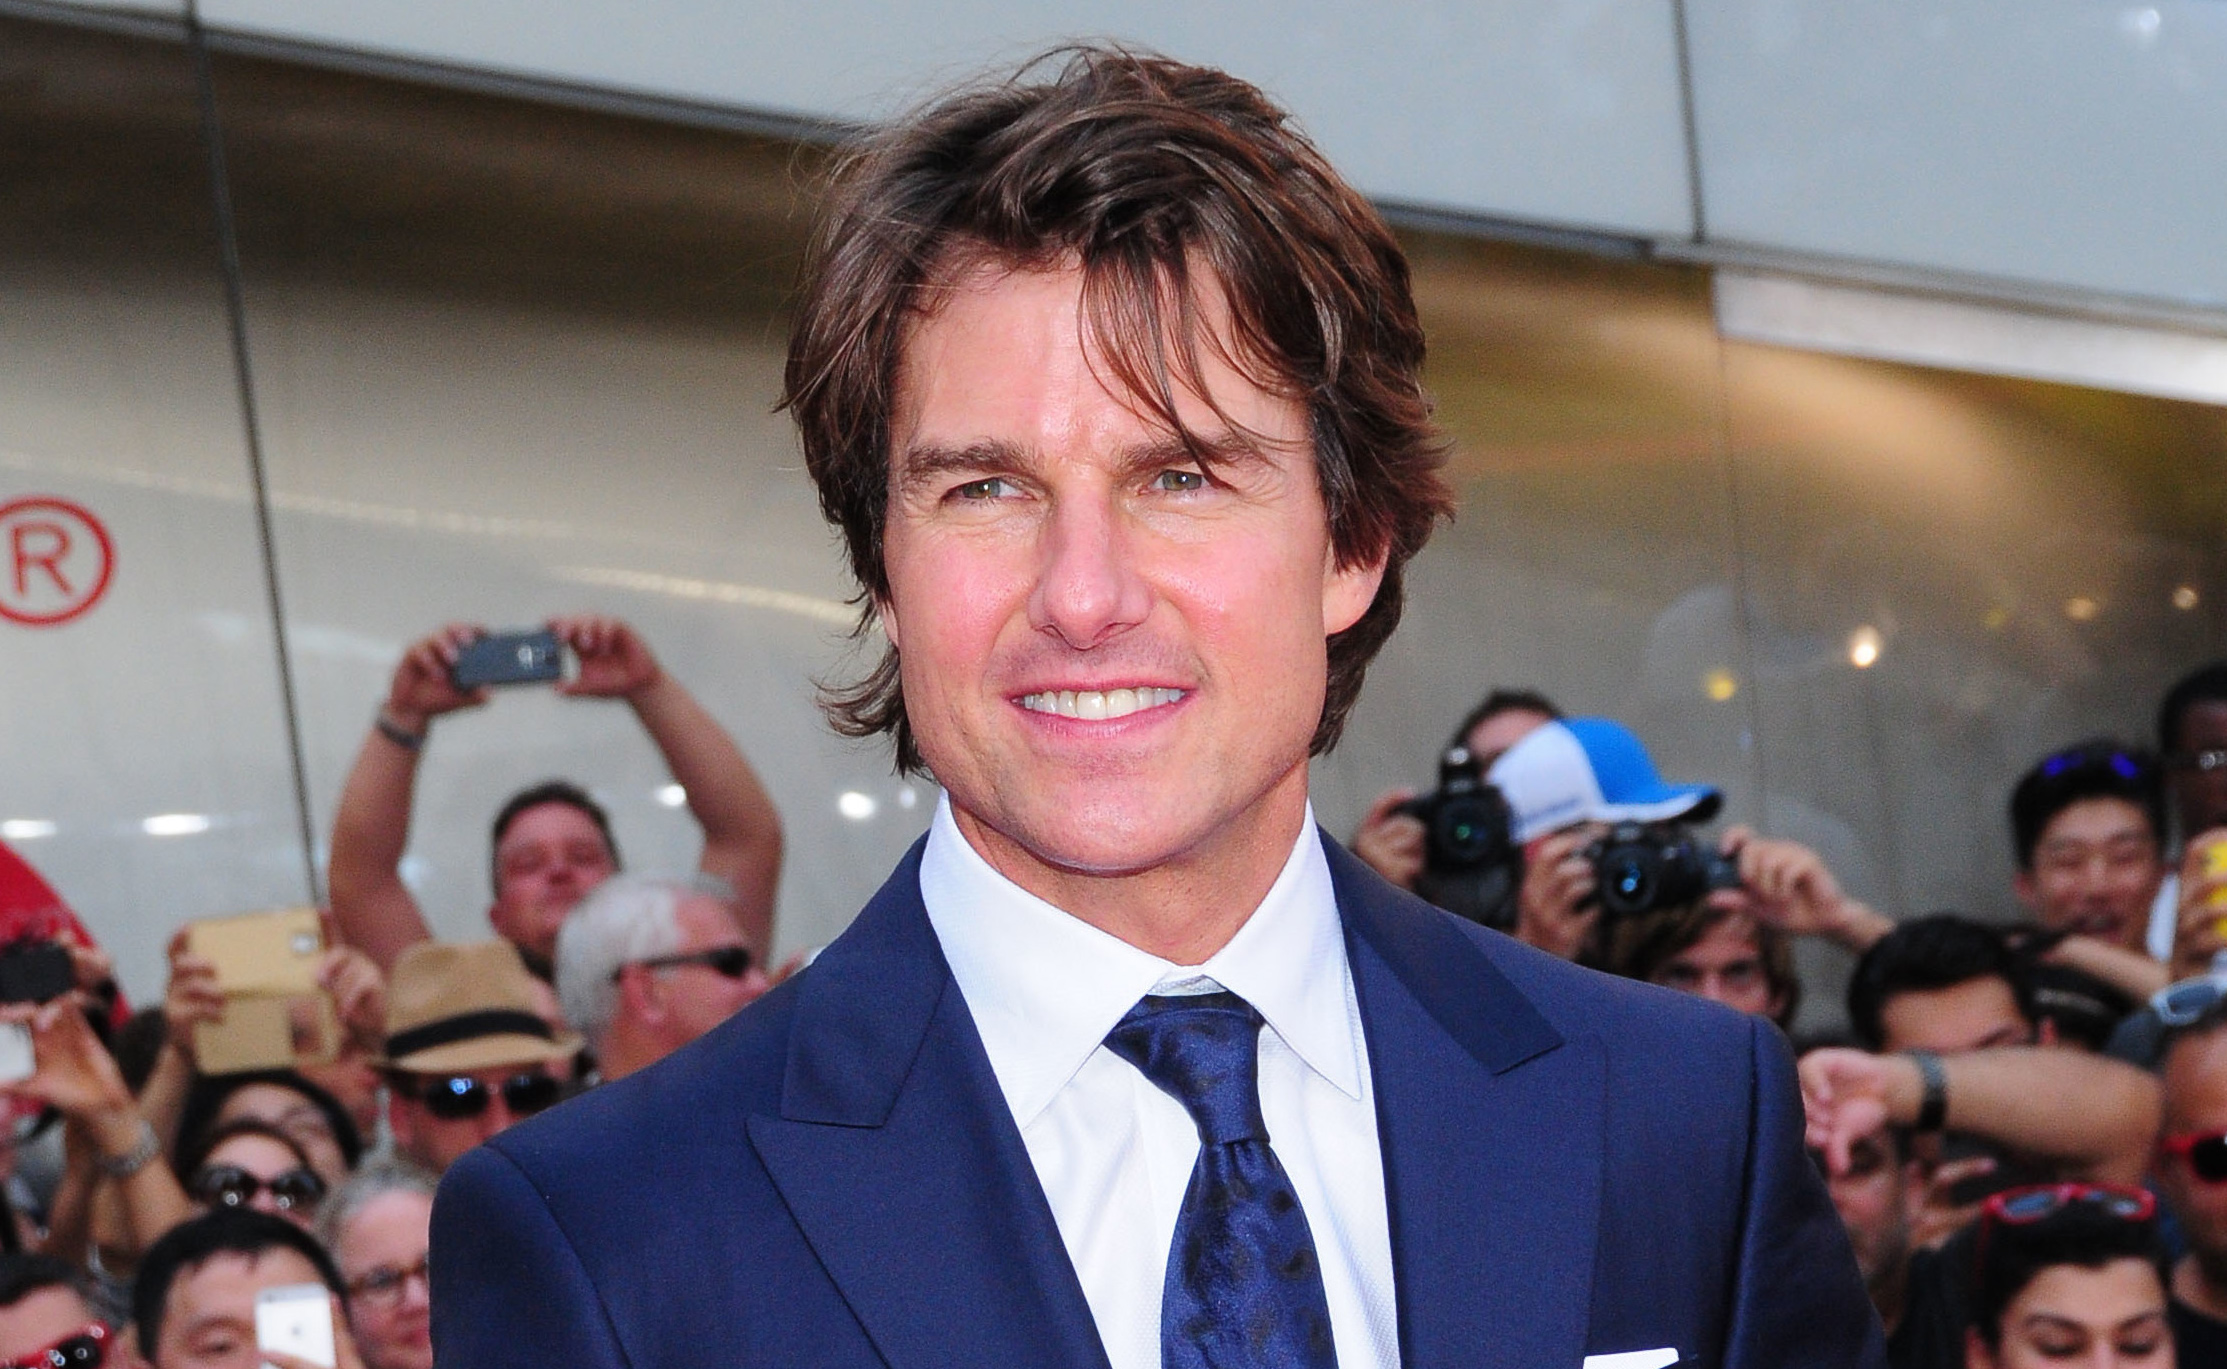 It looks like Tom Cruise may be facing off against The Mummy as new reports suggest that the actor will board the upcoming Universal Monsters reboot.